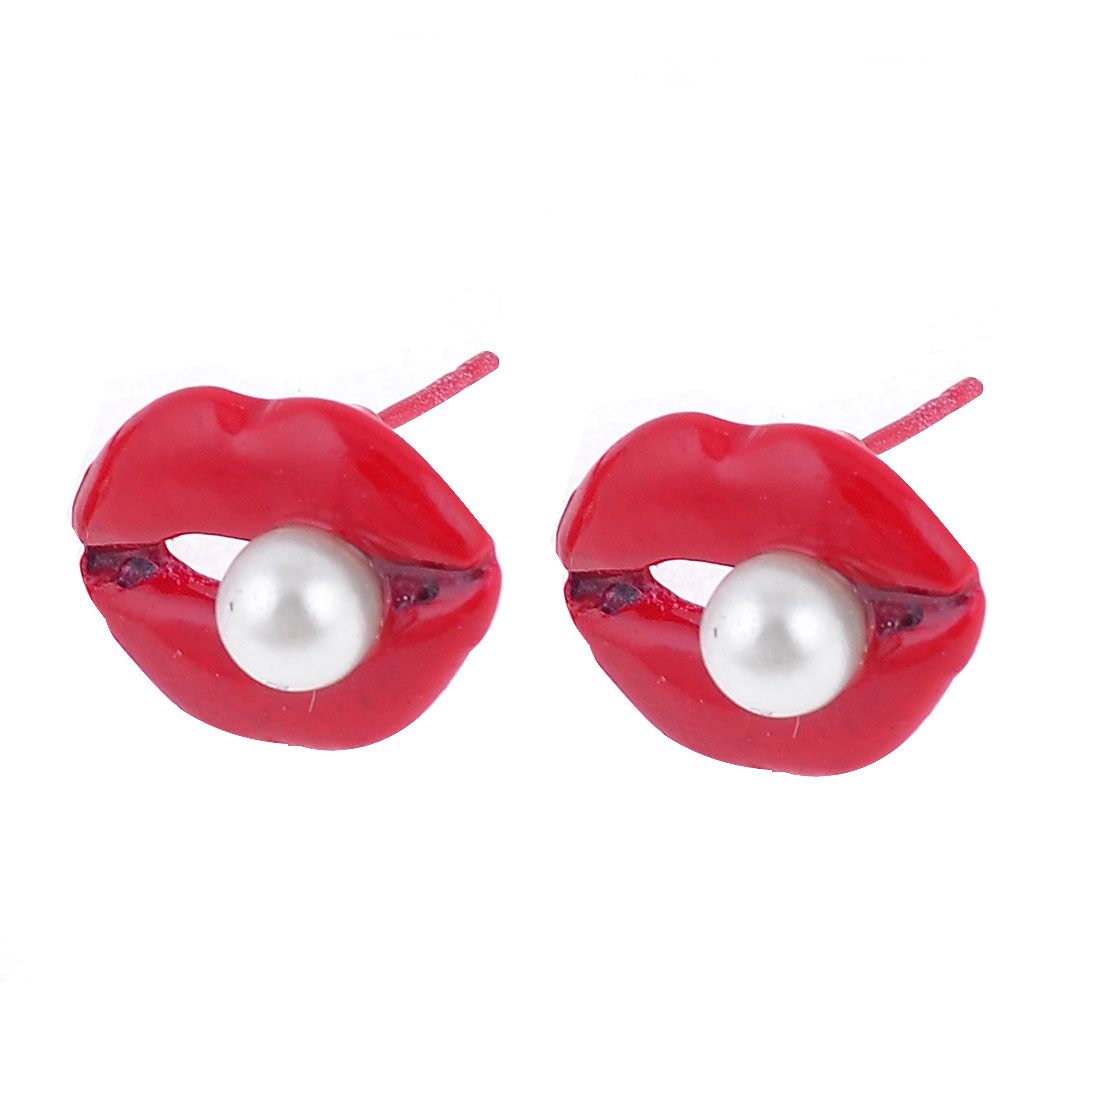 Lady Ear Ornament Imitation Pearl Inlaid Lip Design Stud Earrings Red 2Pcs